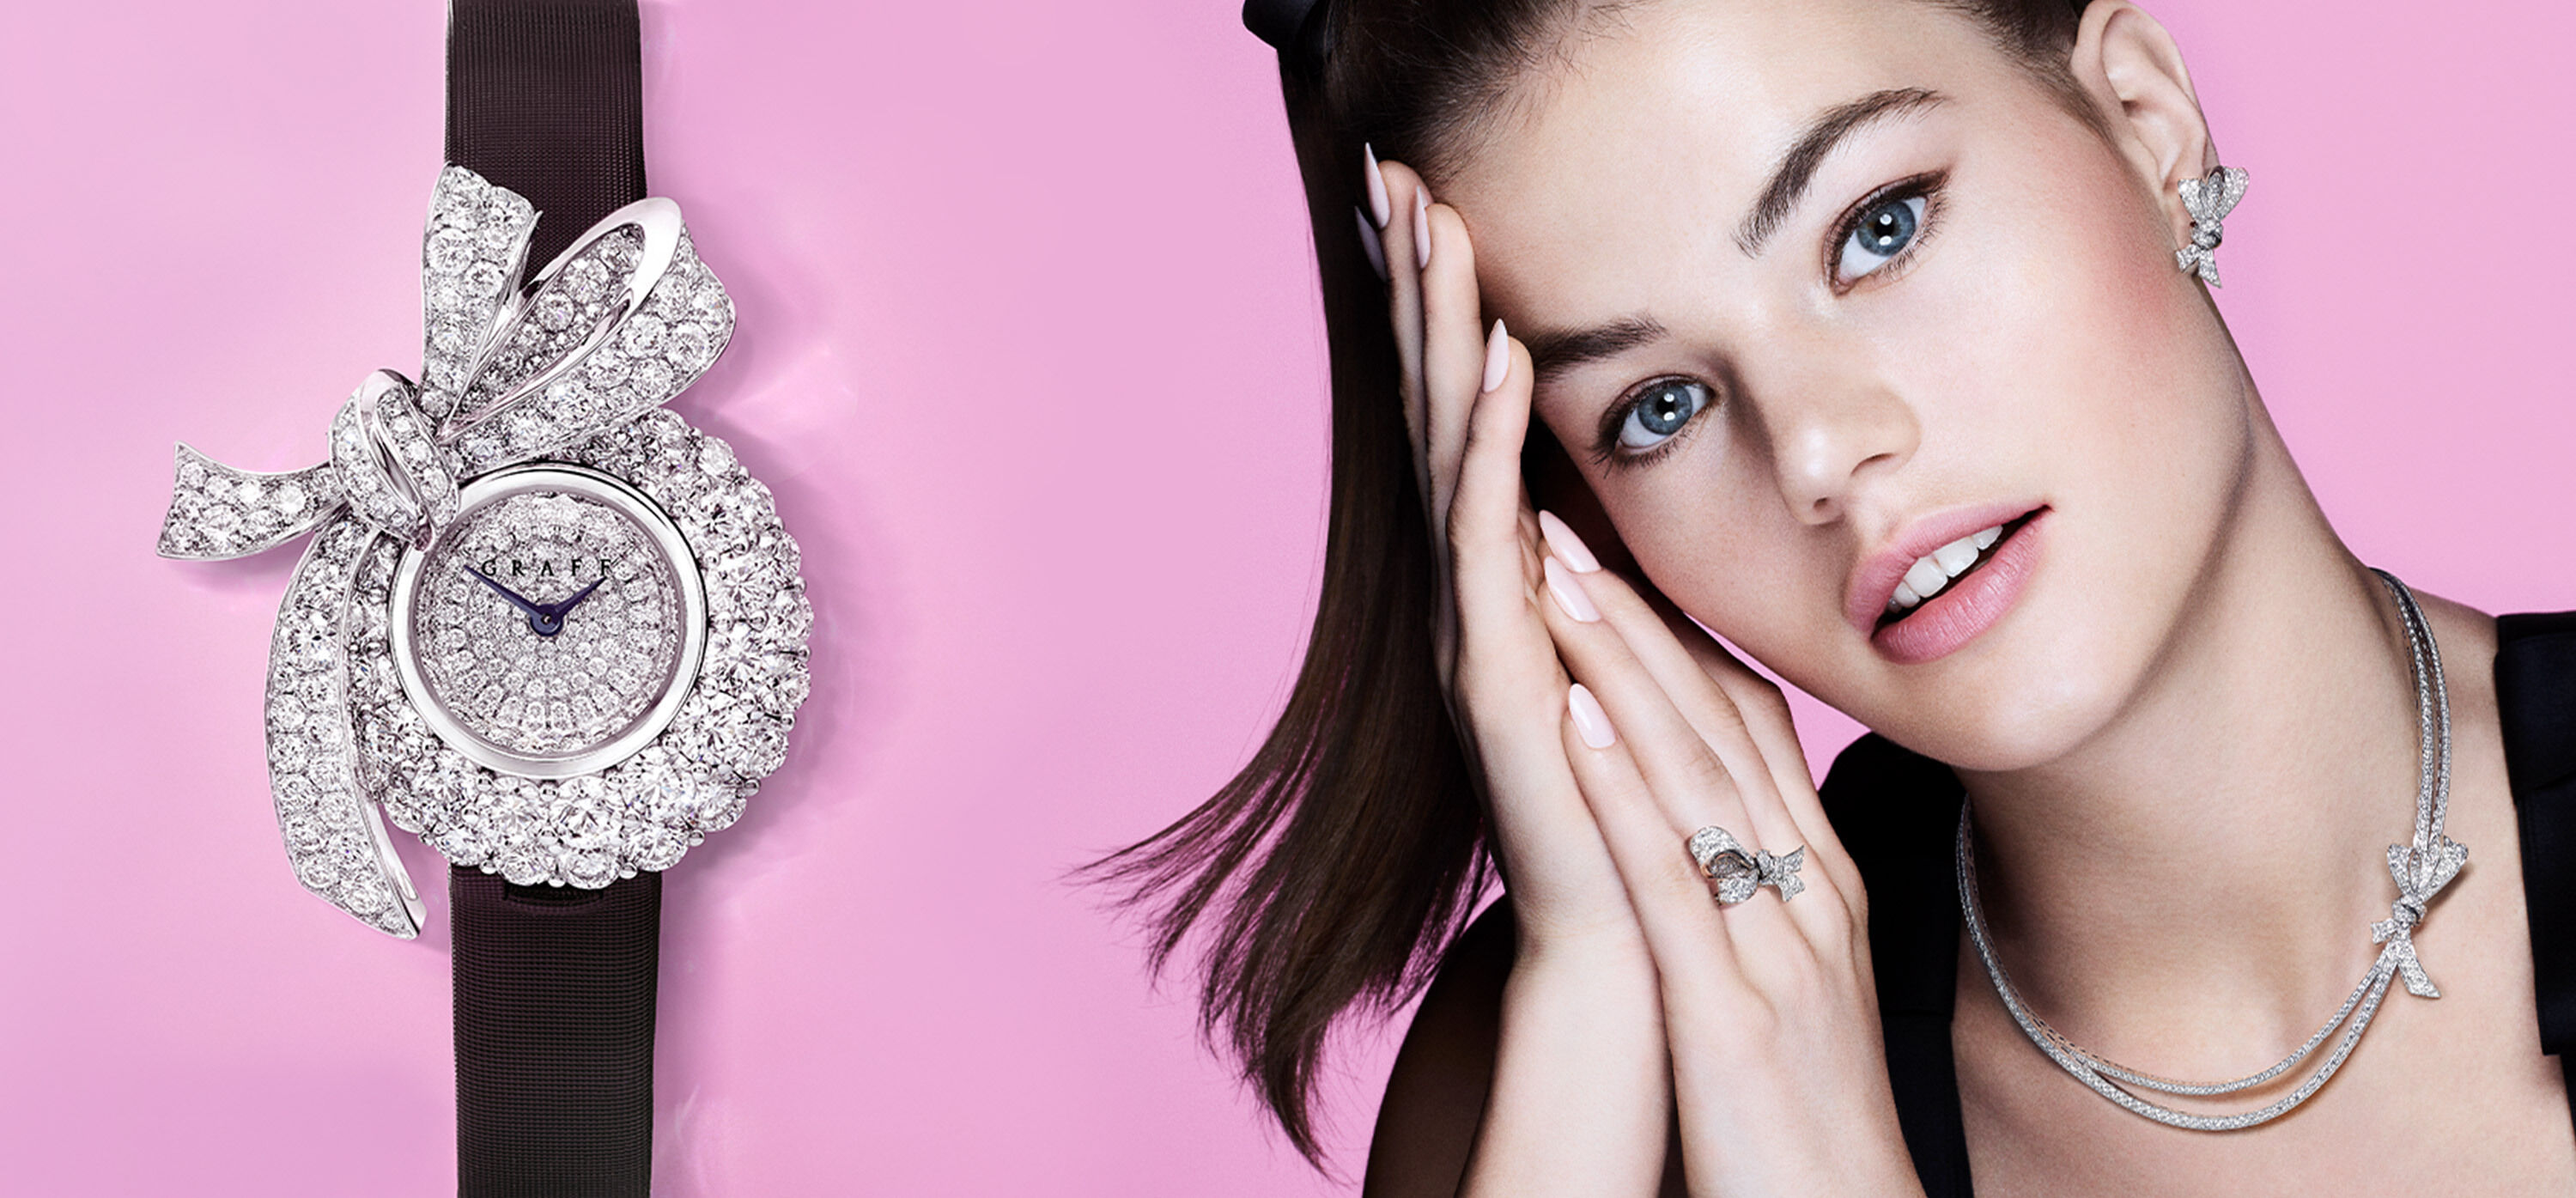 Model wears a Graff spiral collection diamond watch with white mother of pearl dial